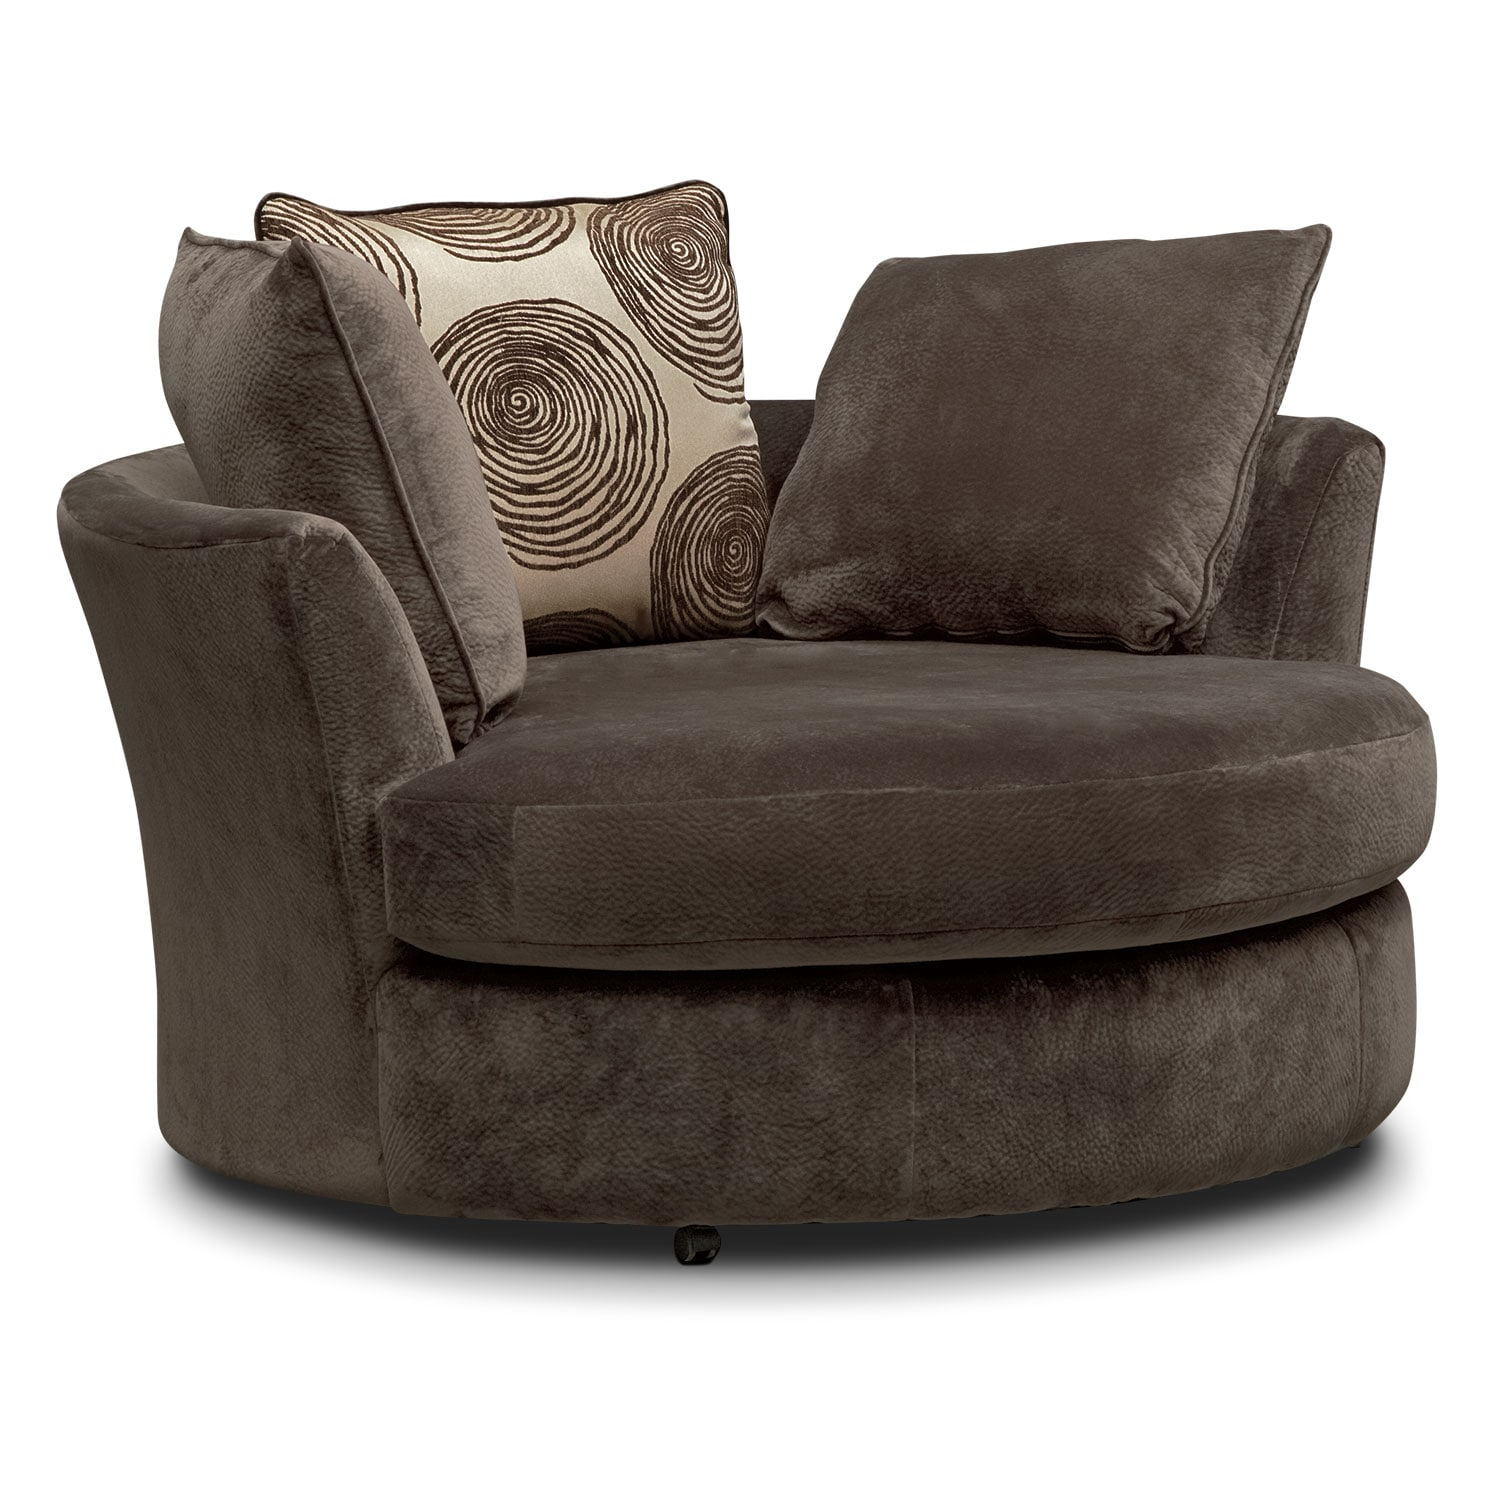 Round Sofa Chair Living Room Furniture Living Room Harveys Living